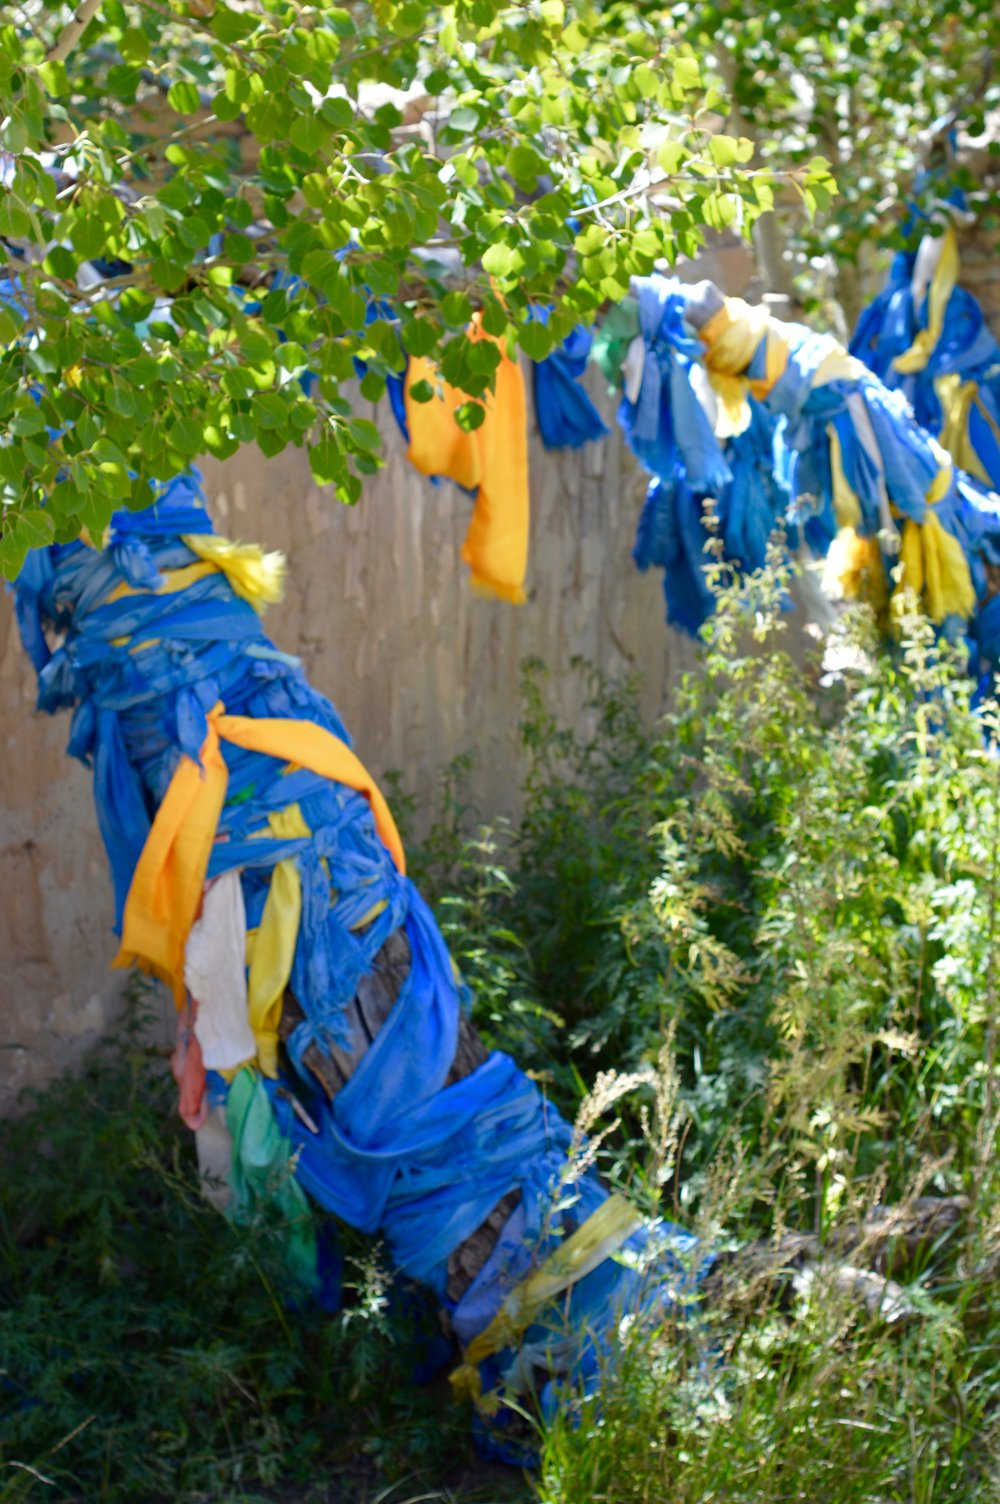 Prayer scarves tied around trees in the monastery